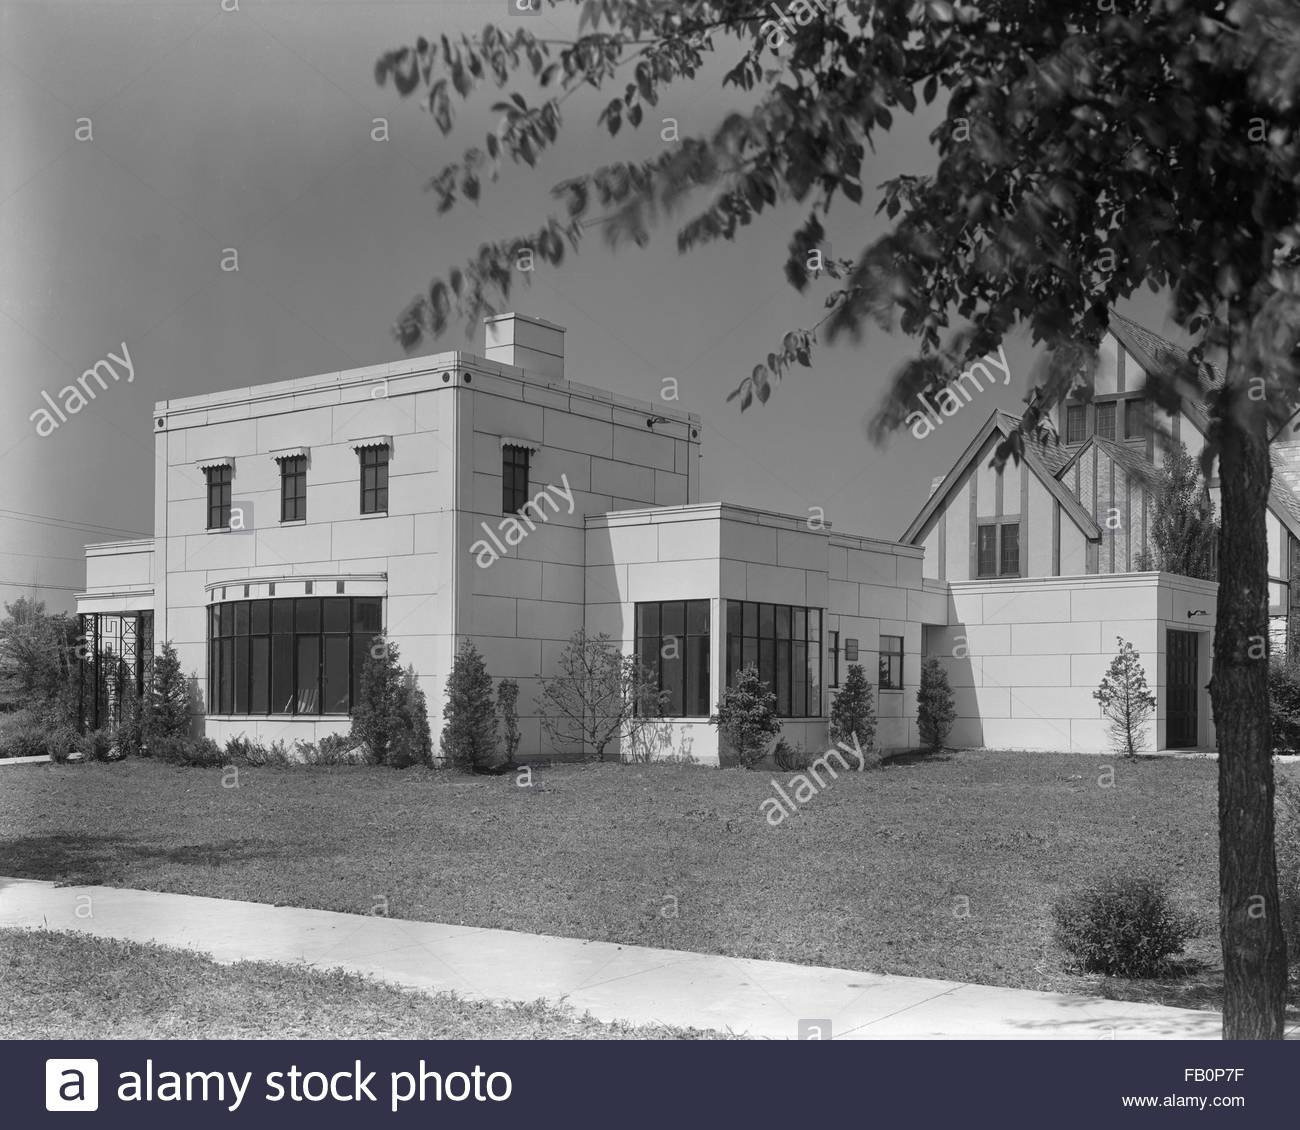 Good Housekeeping-Stran-Steel House in Wilmette (Ill.), 1936 June 17. Angled view of the front of the house. - Stock Image